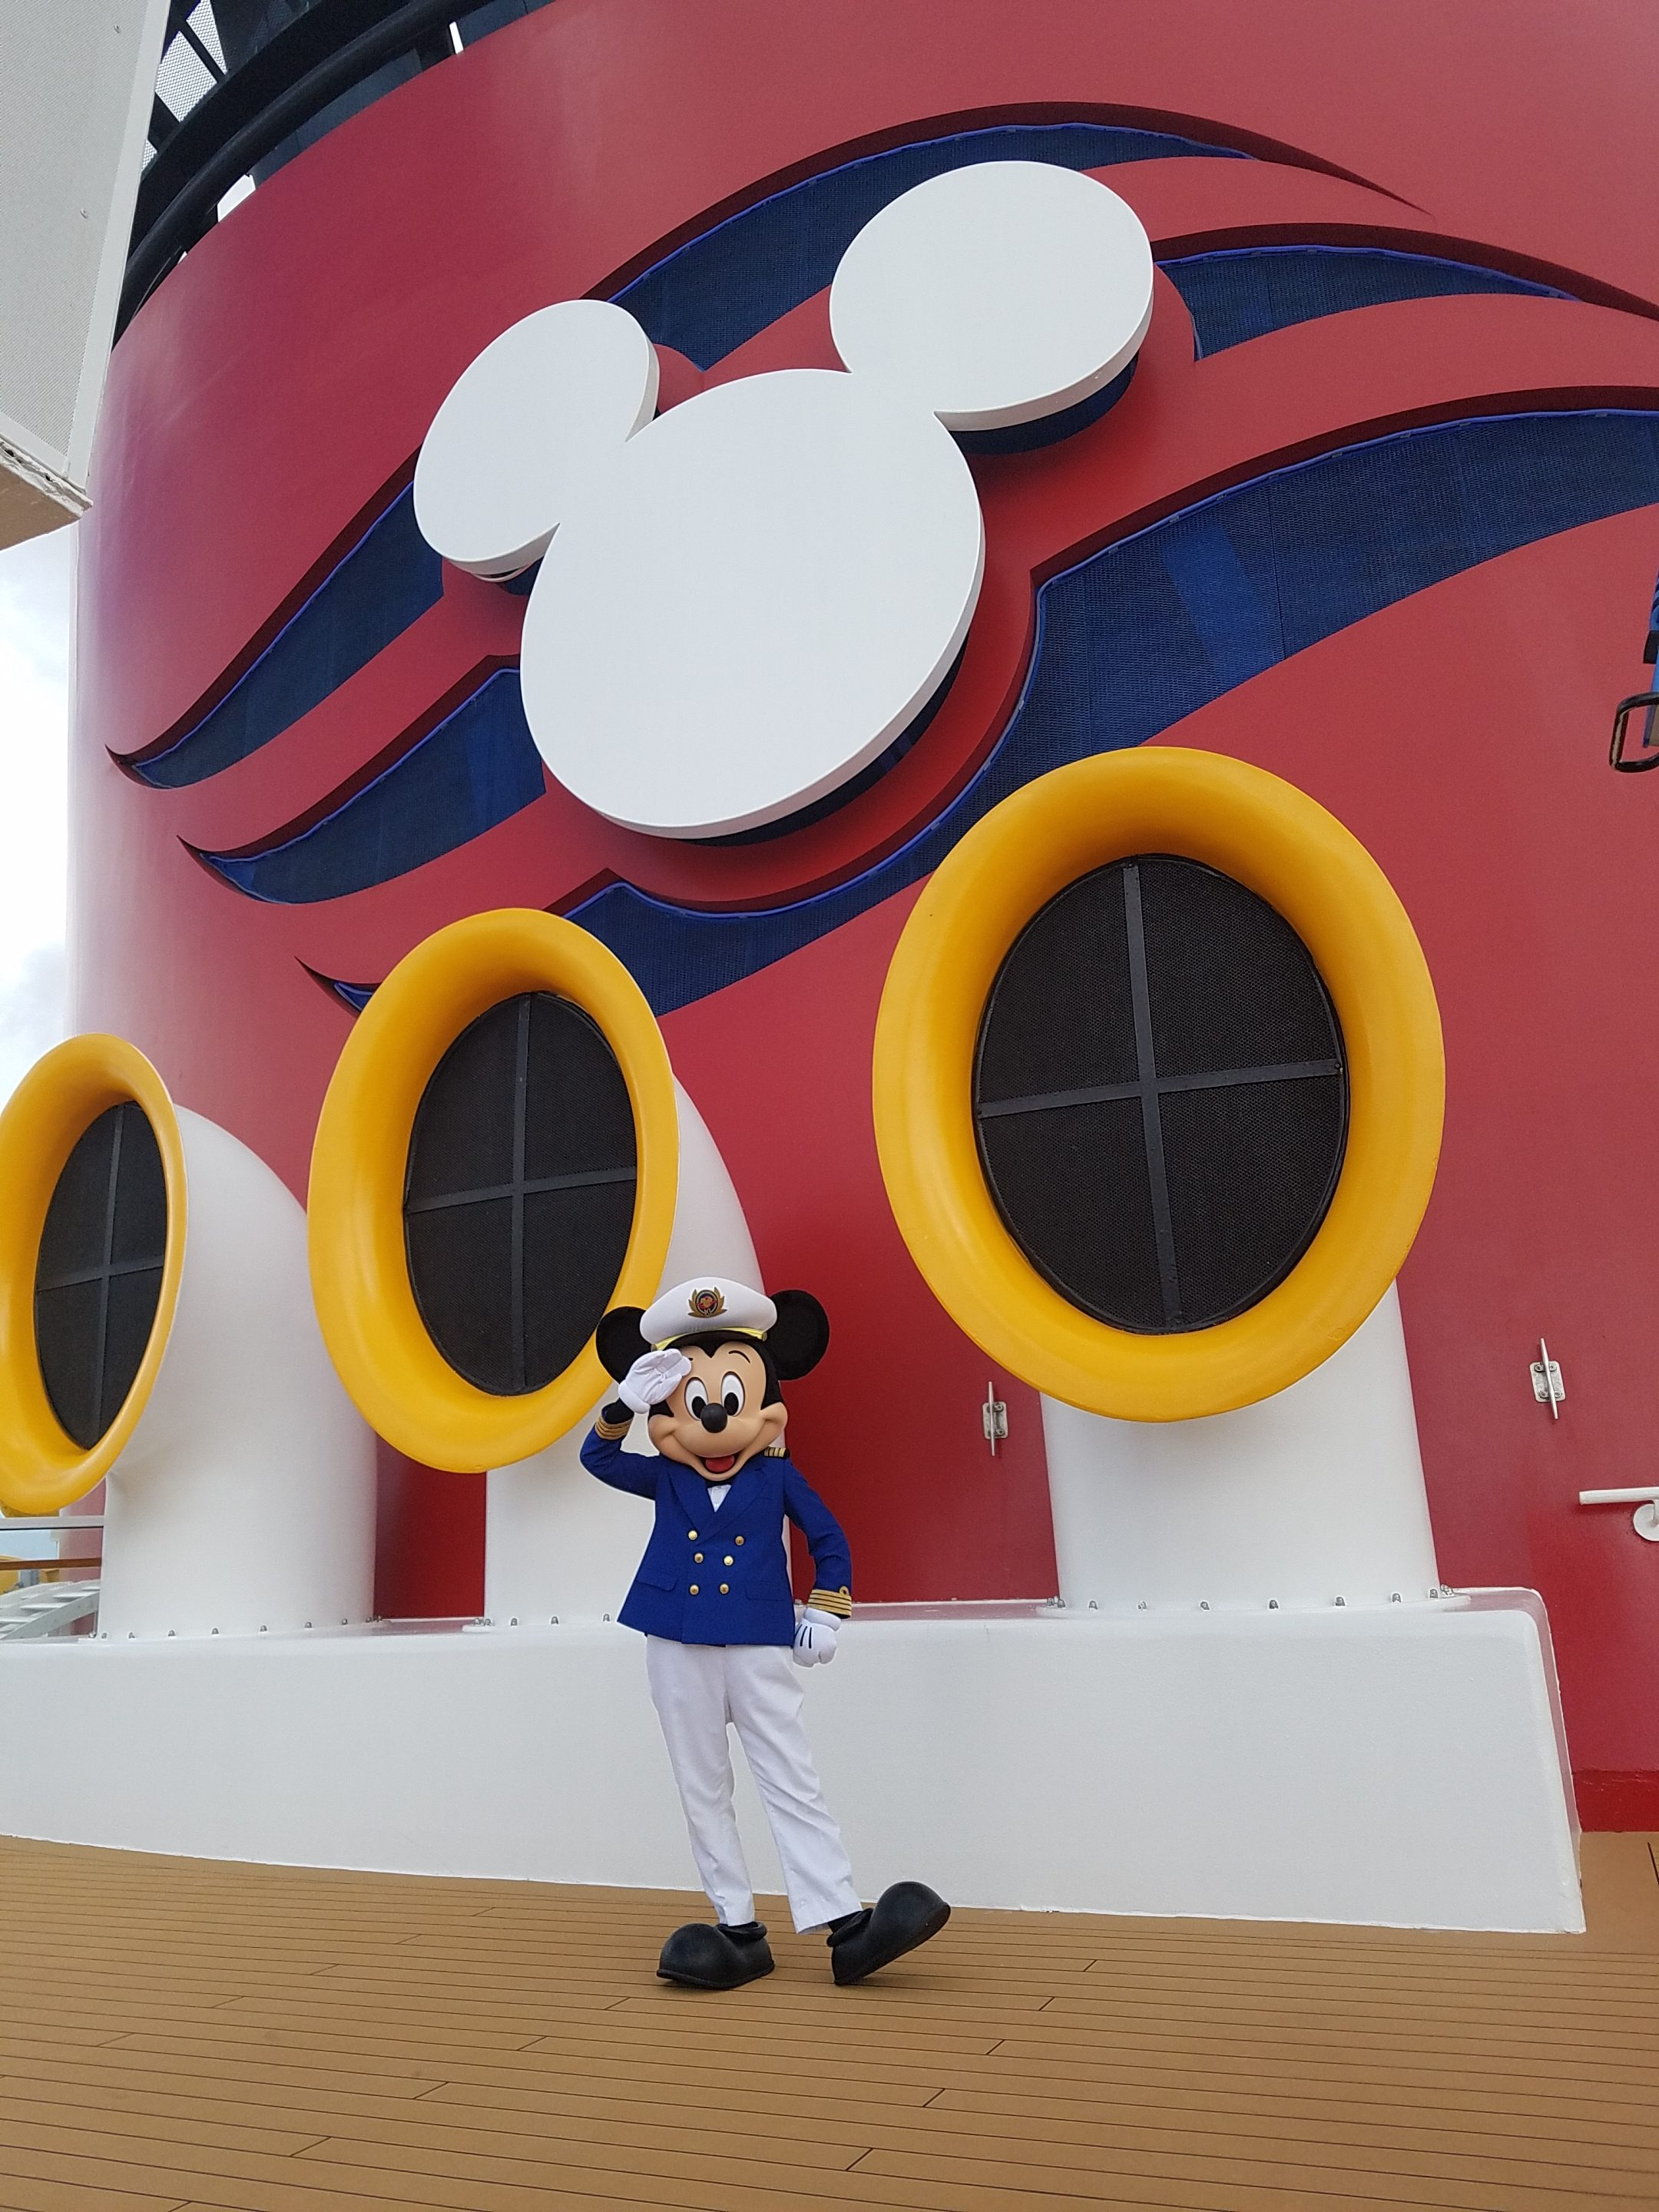 Mickey Mouse as the captain of the Disney Wonder